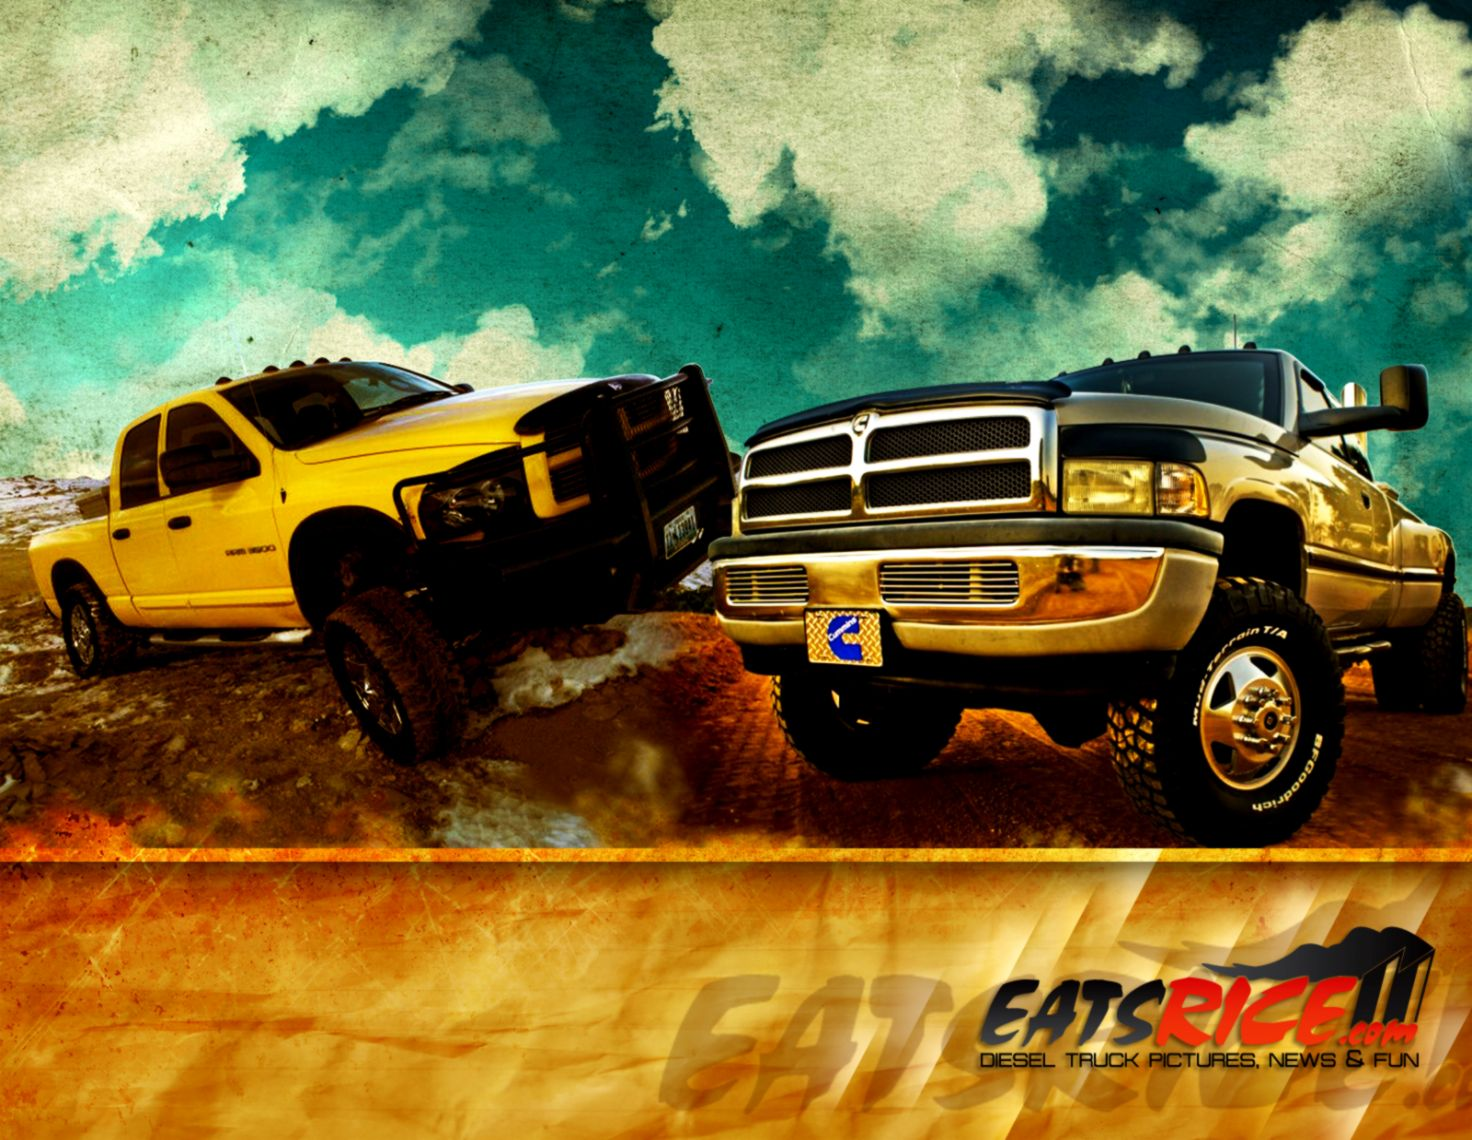 Chevrolet Silverado Wallpaper Car Background Wallpapers Zones